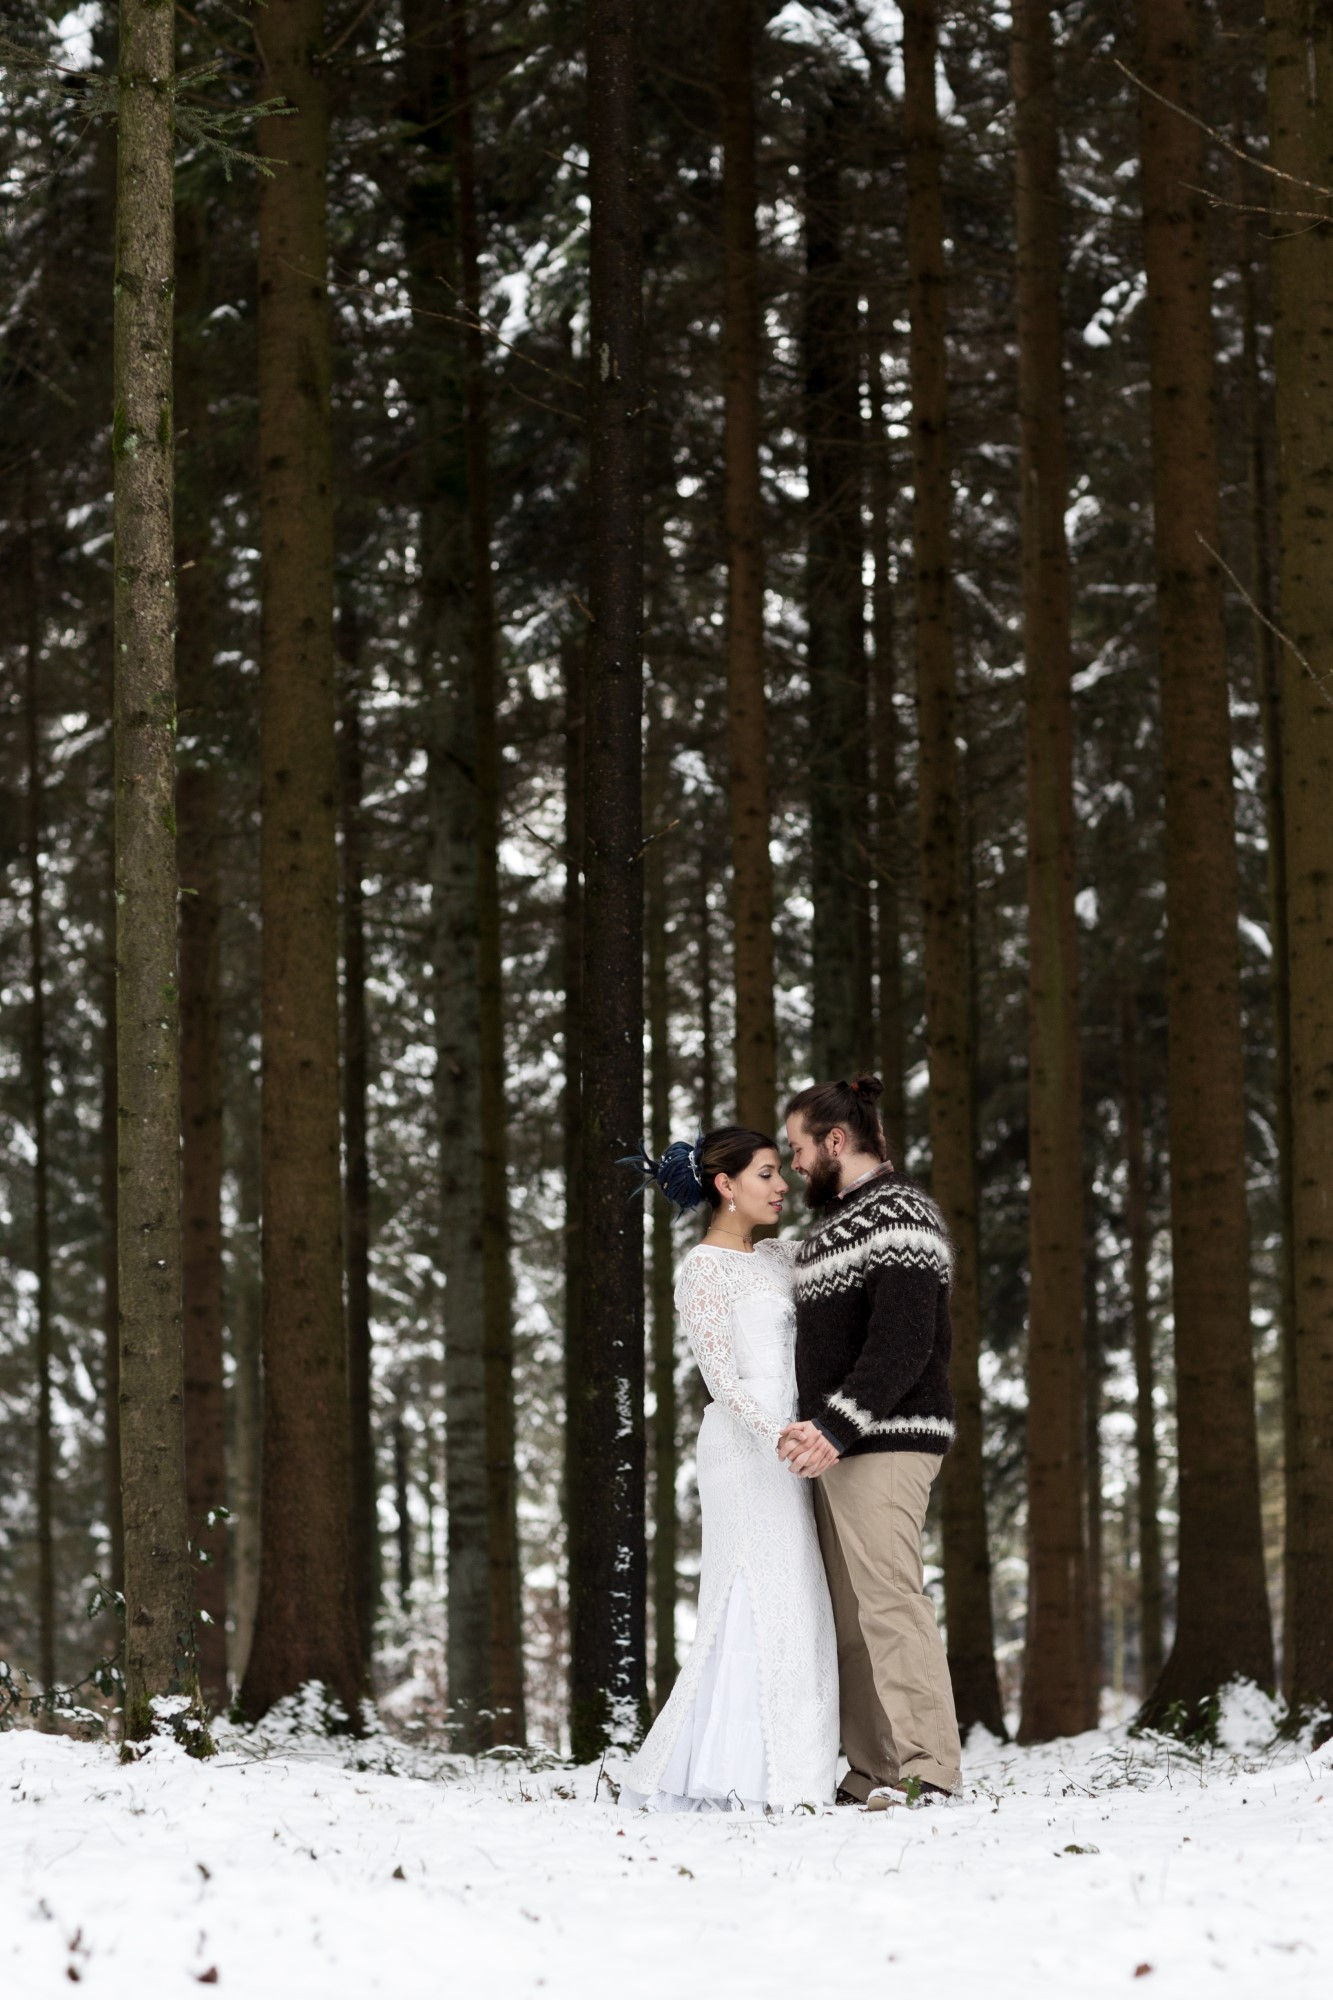 Romantisches Winter Paarfotoshooting im Wald